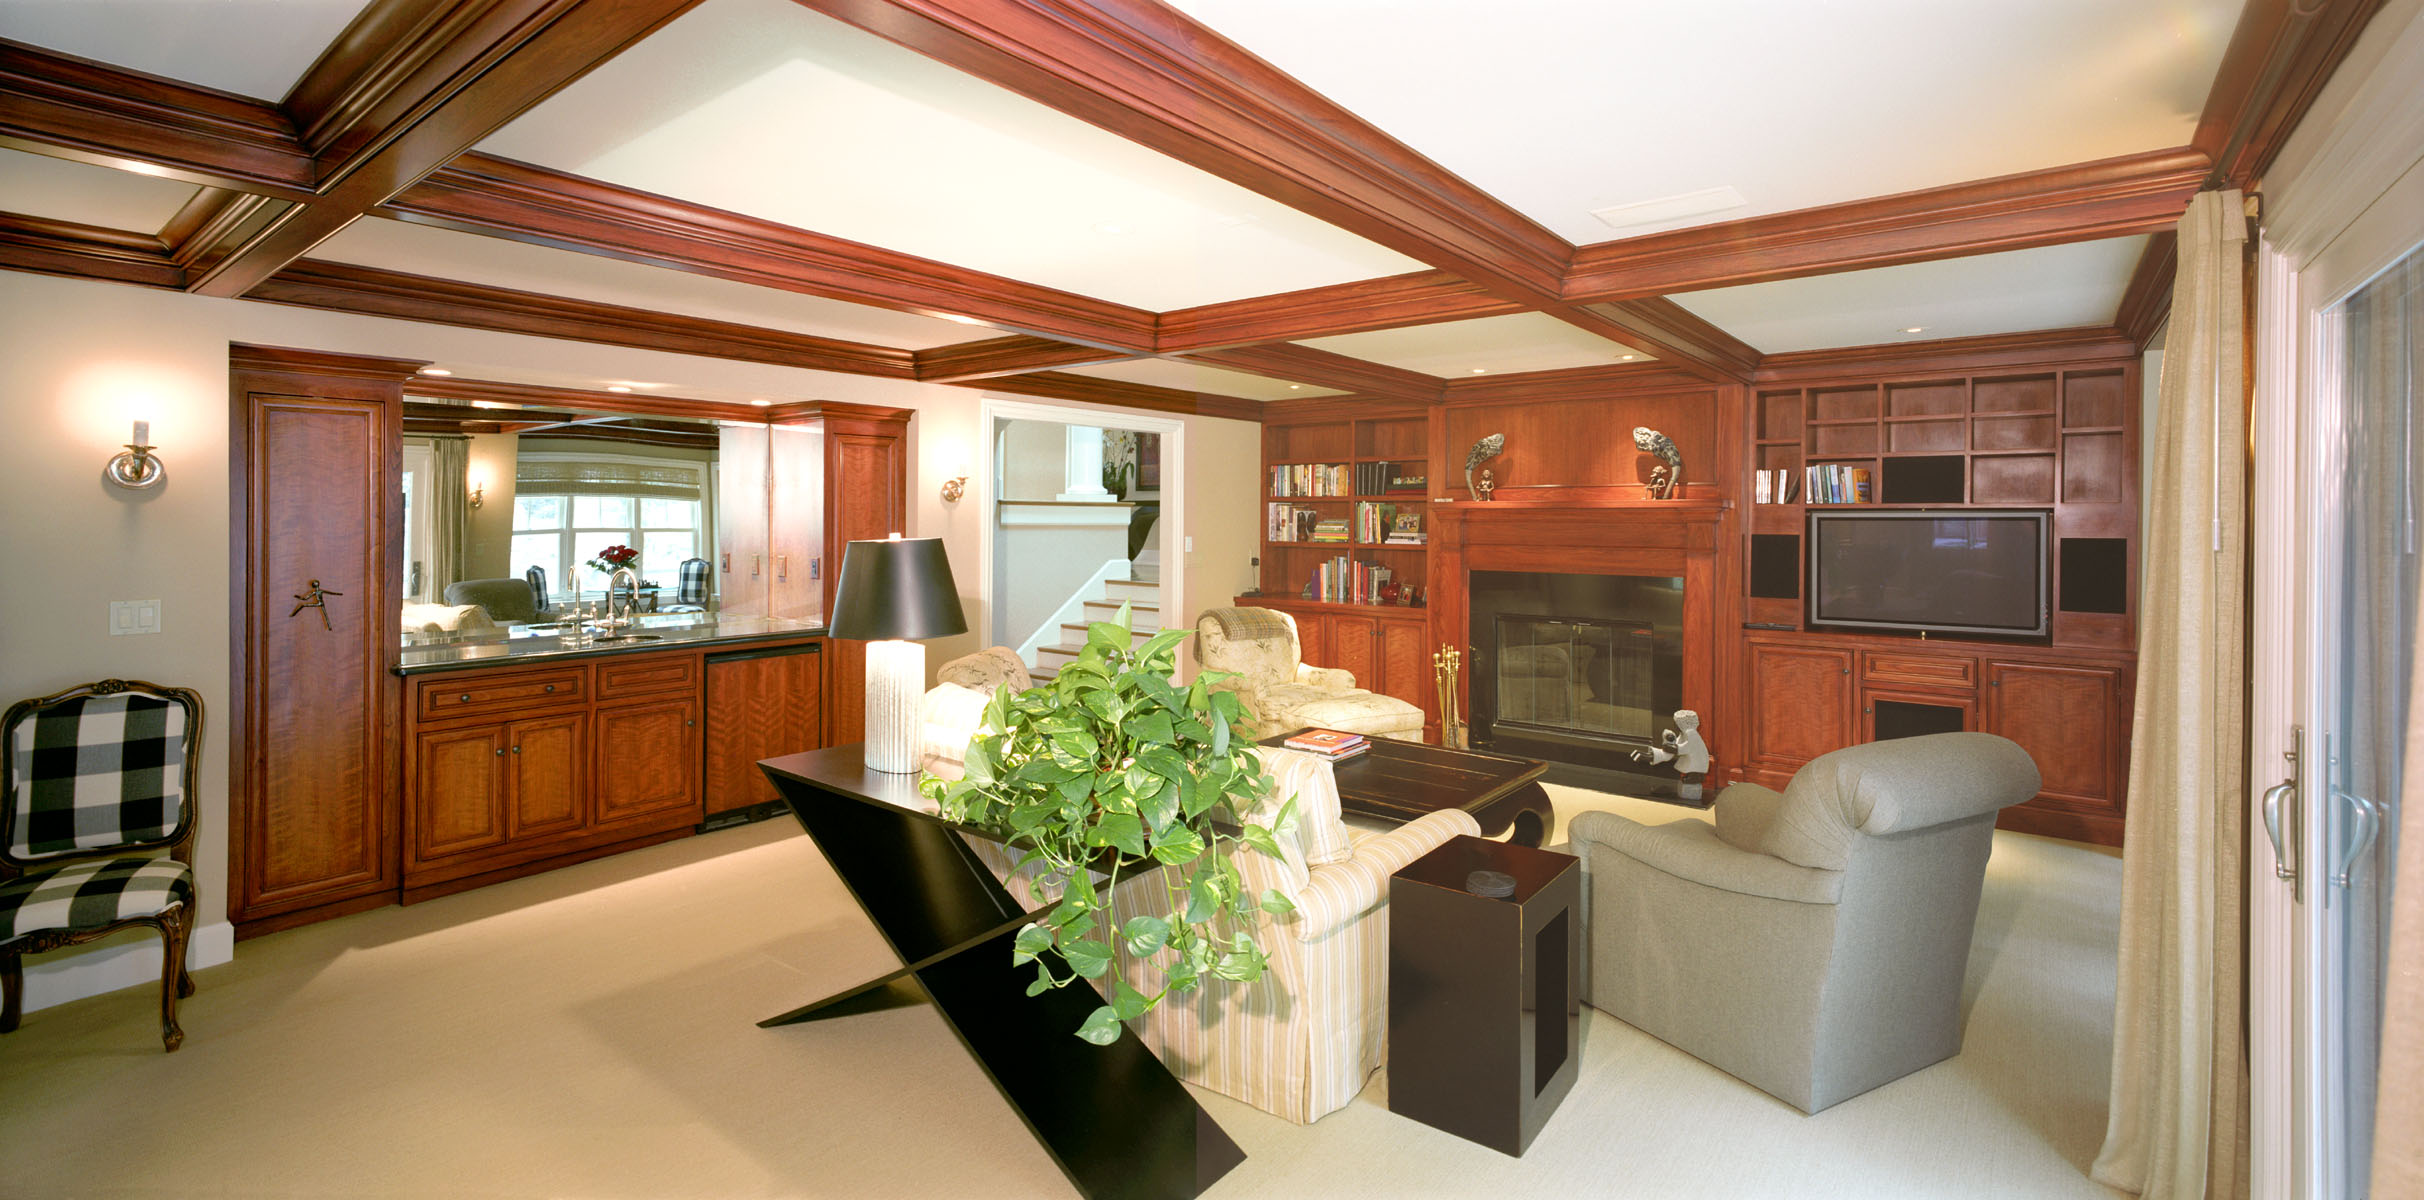 Rivendell Woodworks | Custom Woodworking | Concord, CA | 360 Web Designs | Dublin, CA